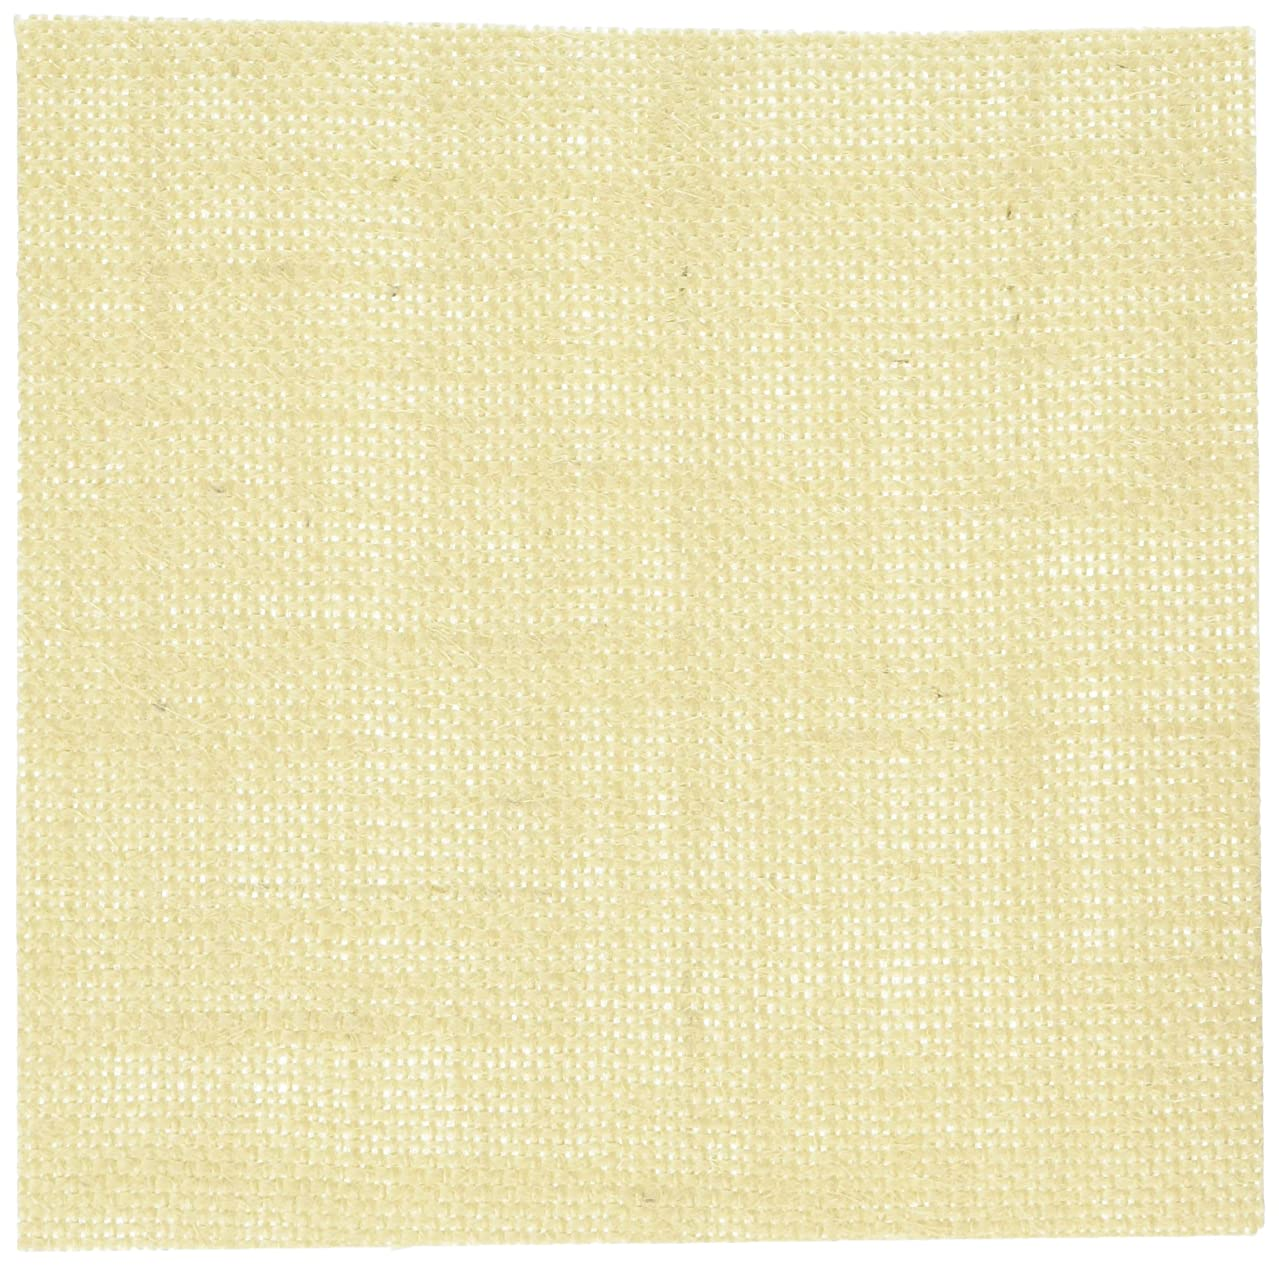 Multicraft Imports SP356B Burlap Sheet (3 Pack), 6